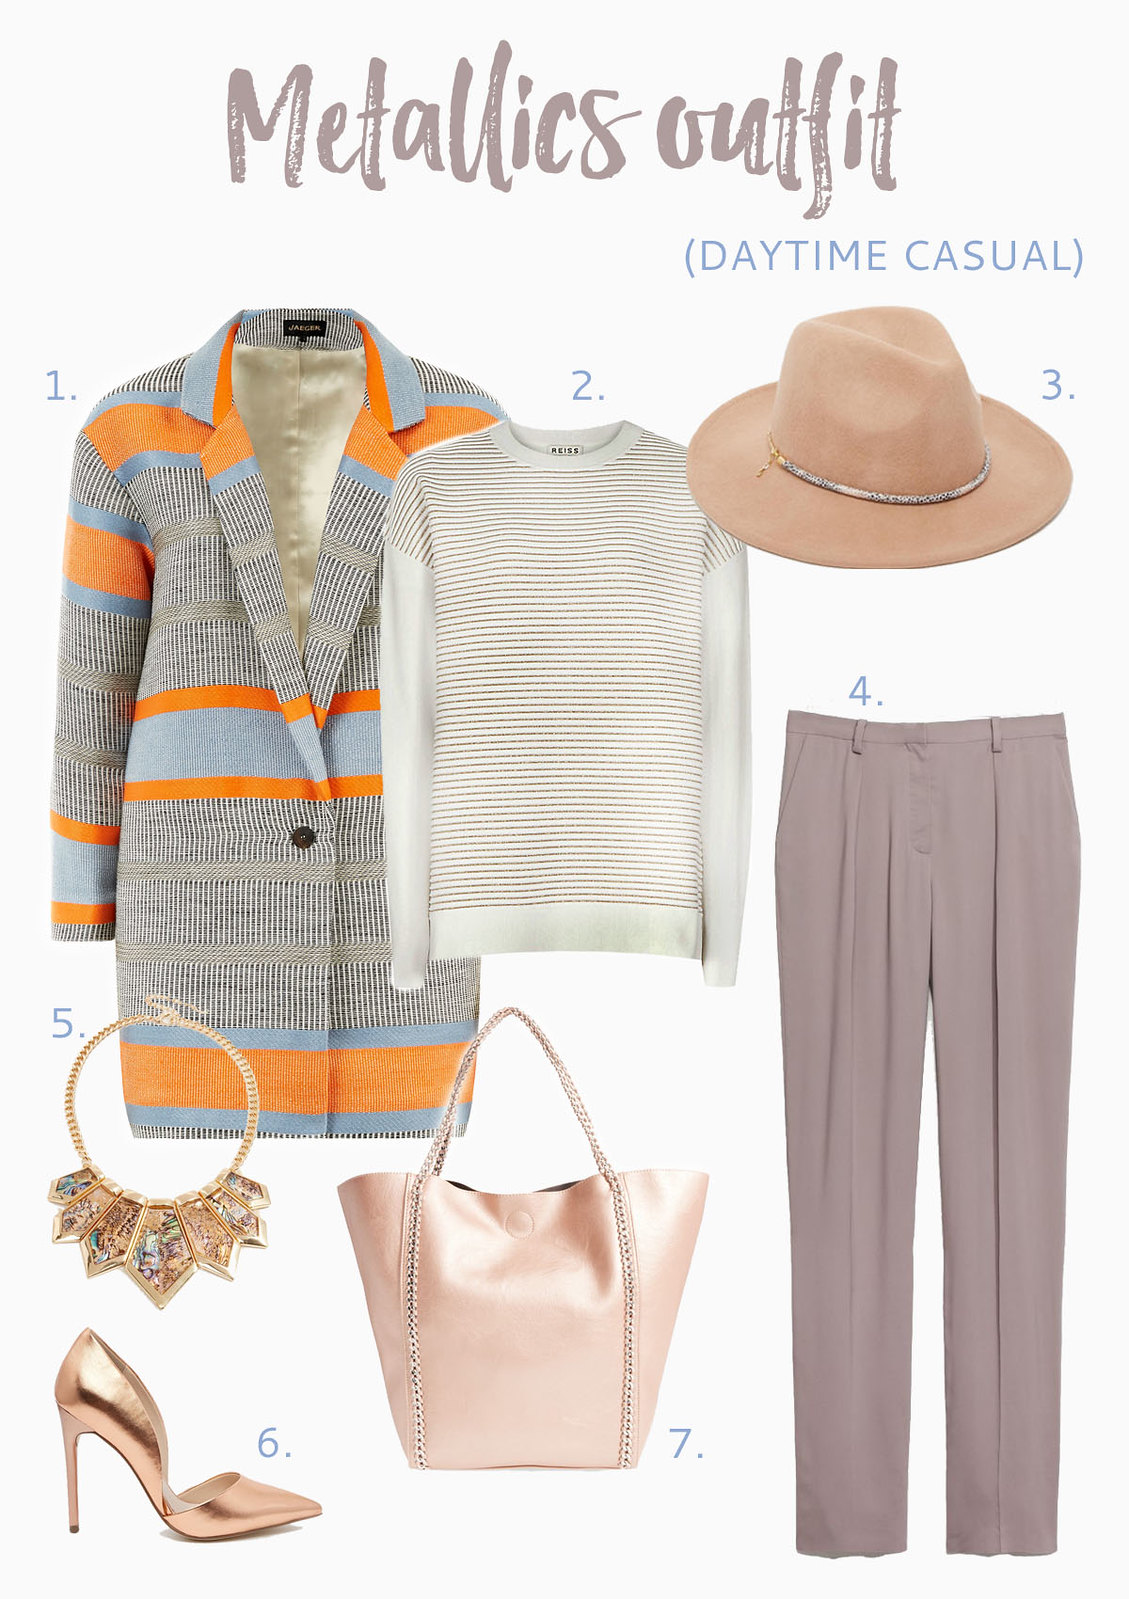 Metallics outfit inspiration | Casual daytime